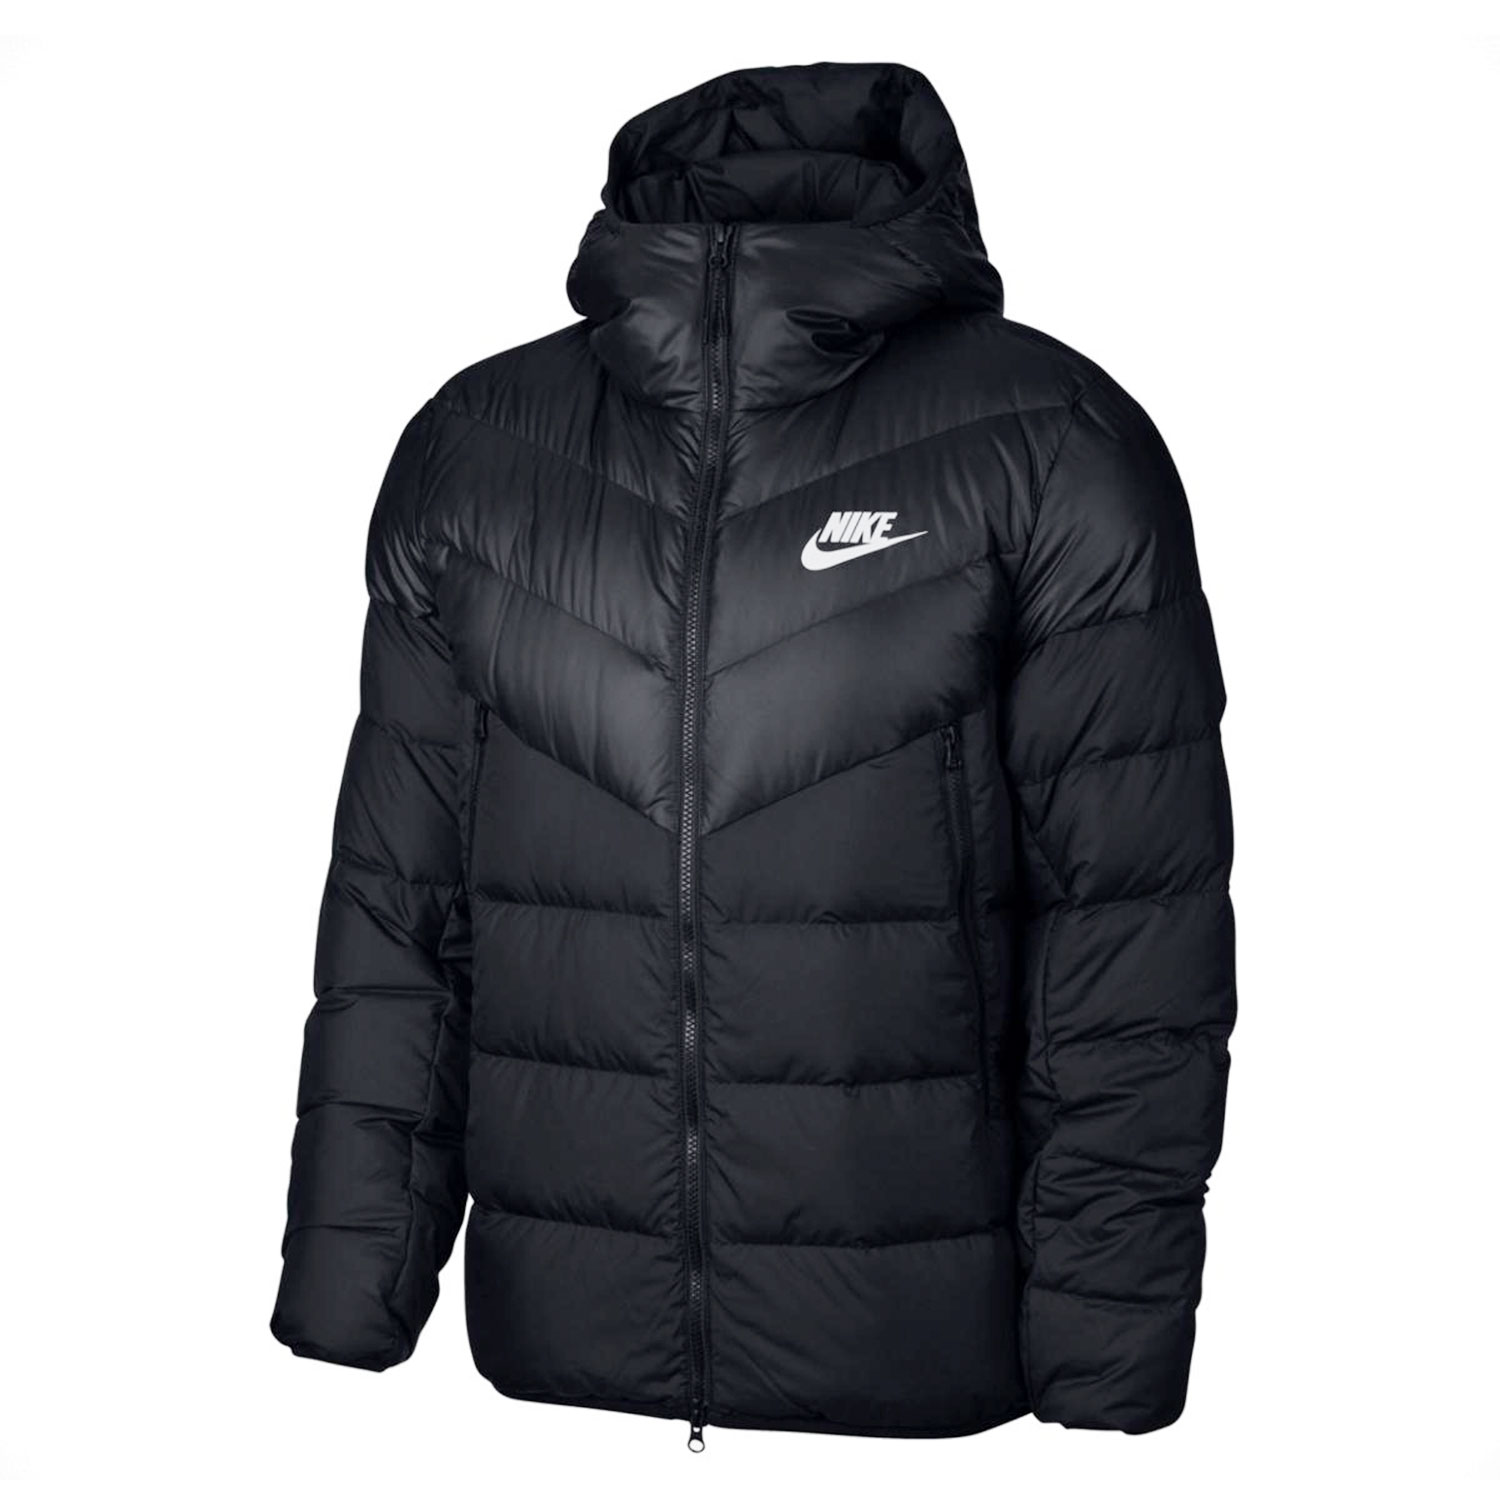 Nike Windrunner Down Fill Jacket Herrenjacke schwarz weiß 928833 010